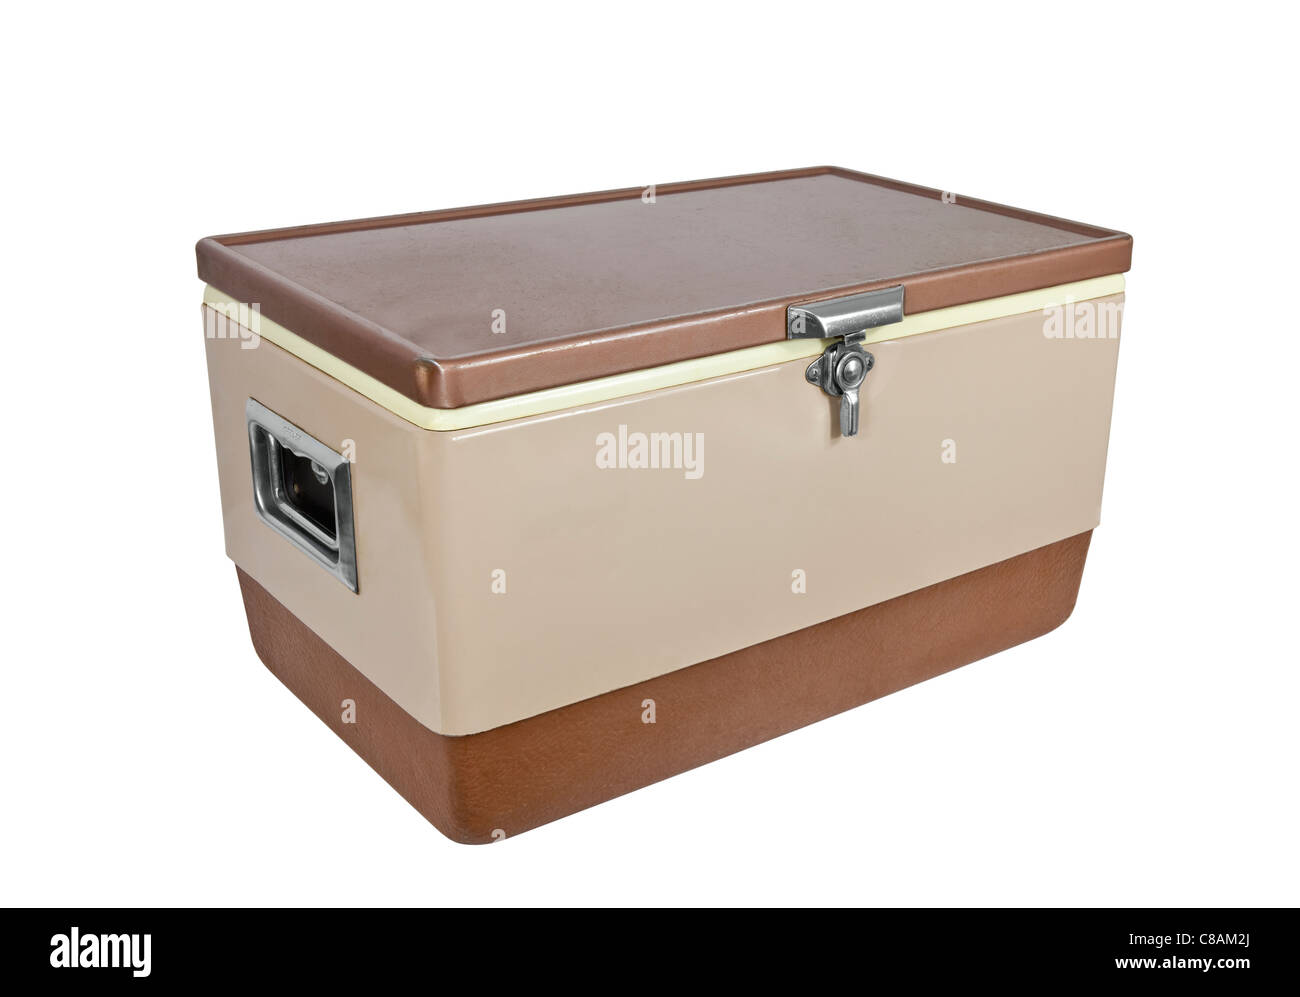 Vintage ice chest cooler from the 1970's isolated on white. - Stock Image